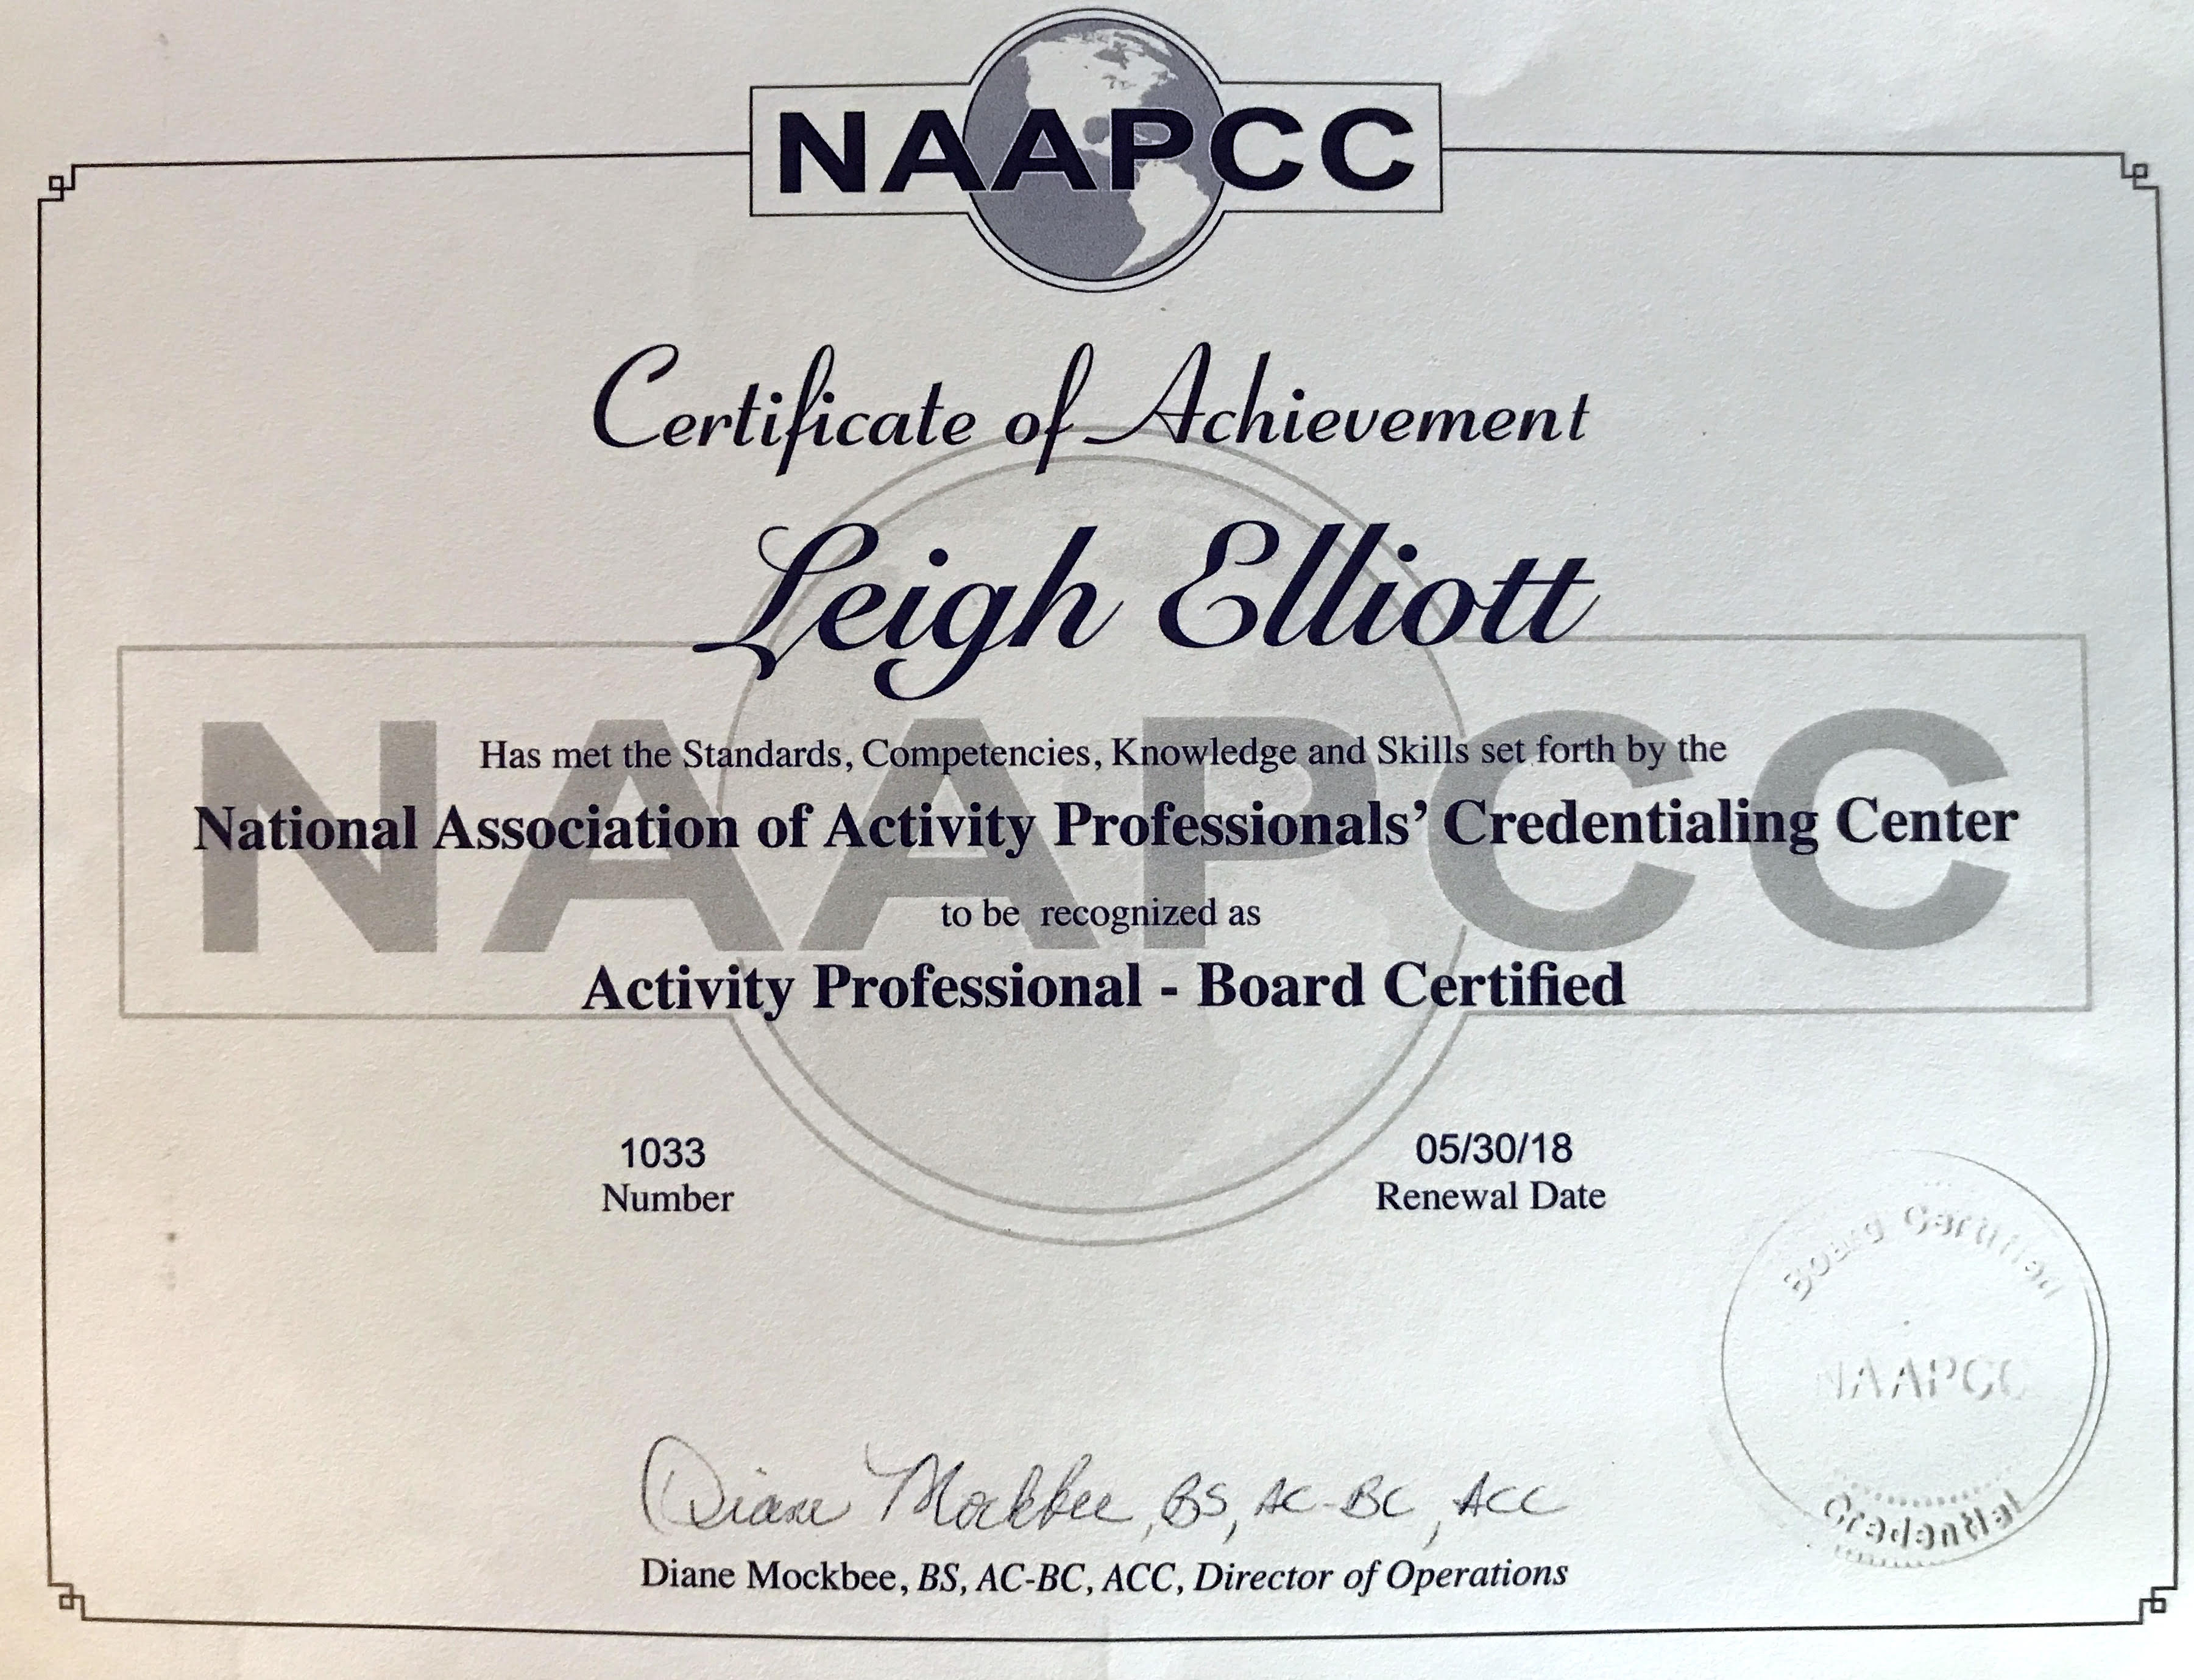 certificate activity certificates completion credentialing professionals national association center